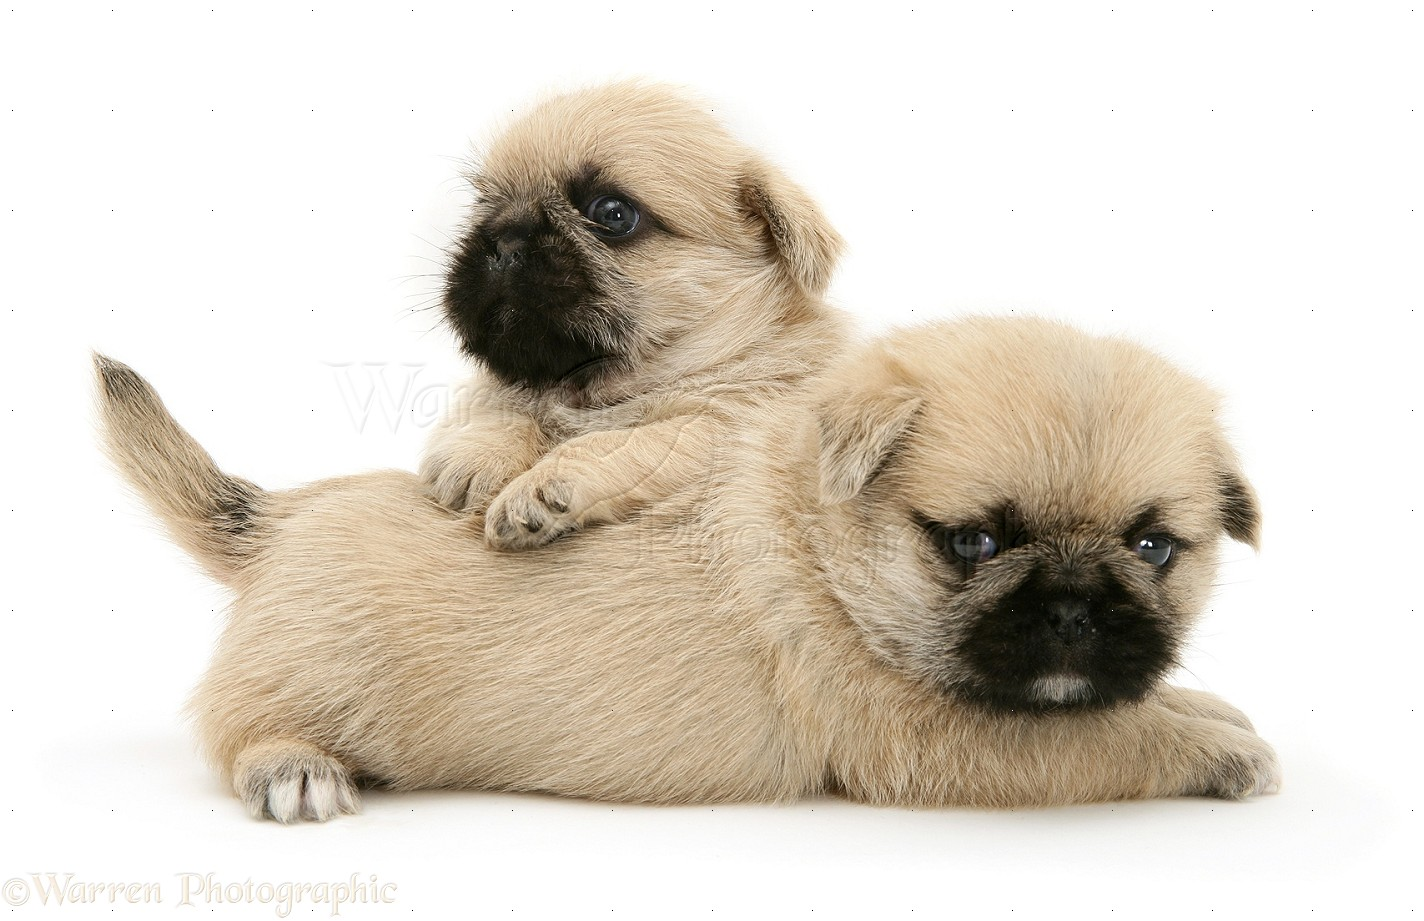 Pug Shih Tzu Puppies Group Picture Image Tag Keywordpictures Dog